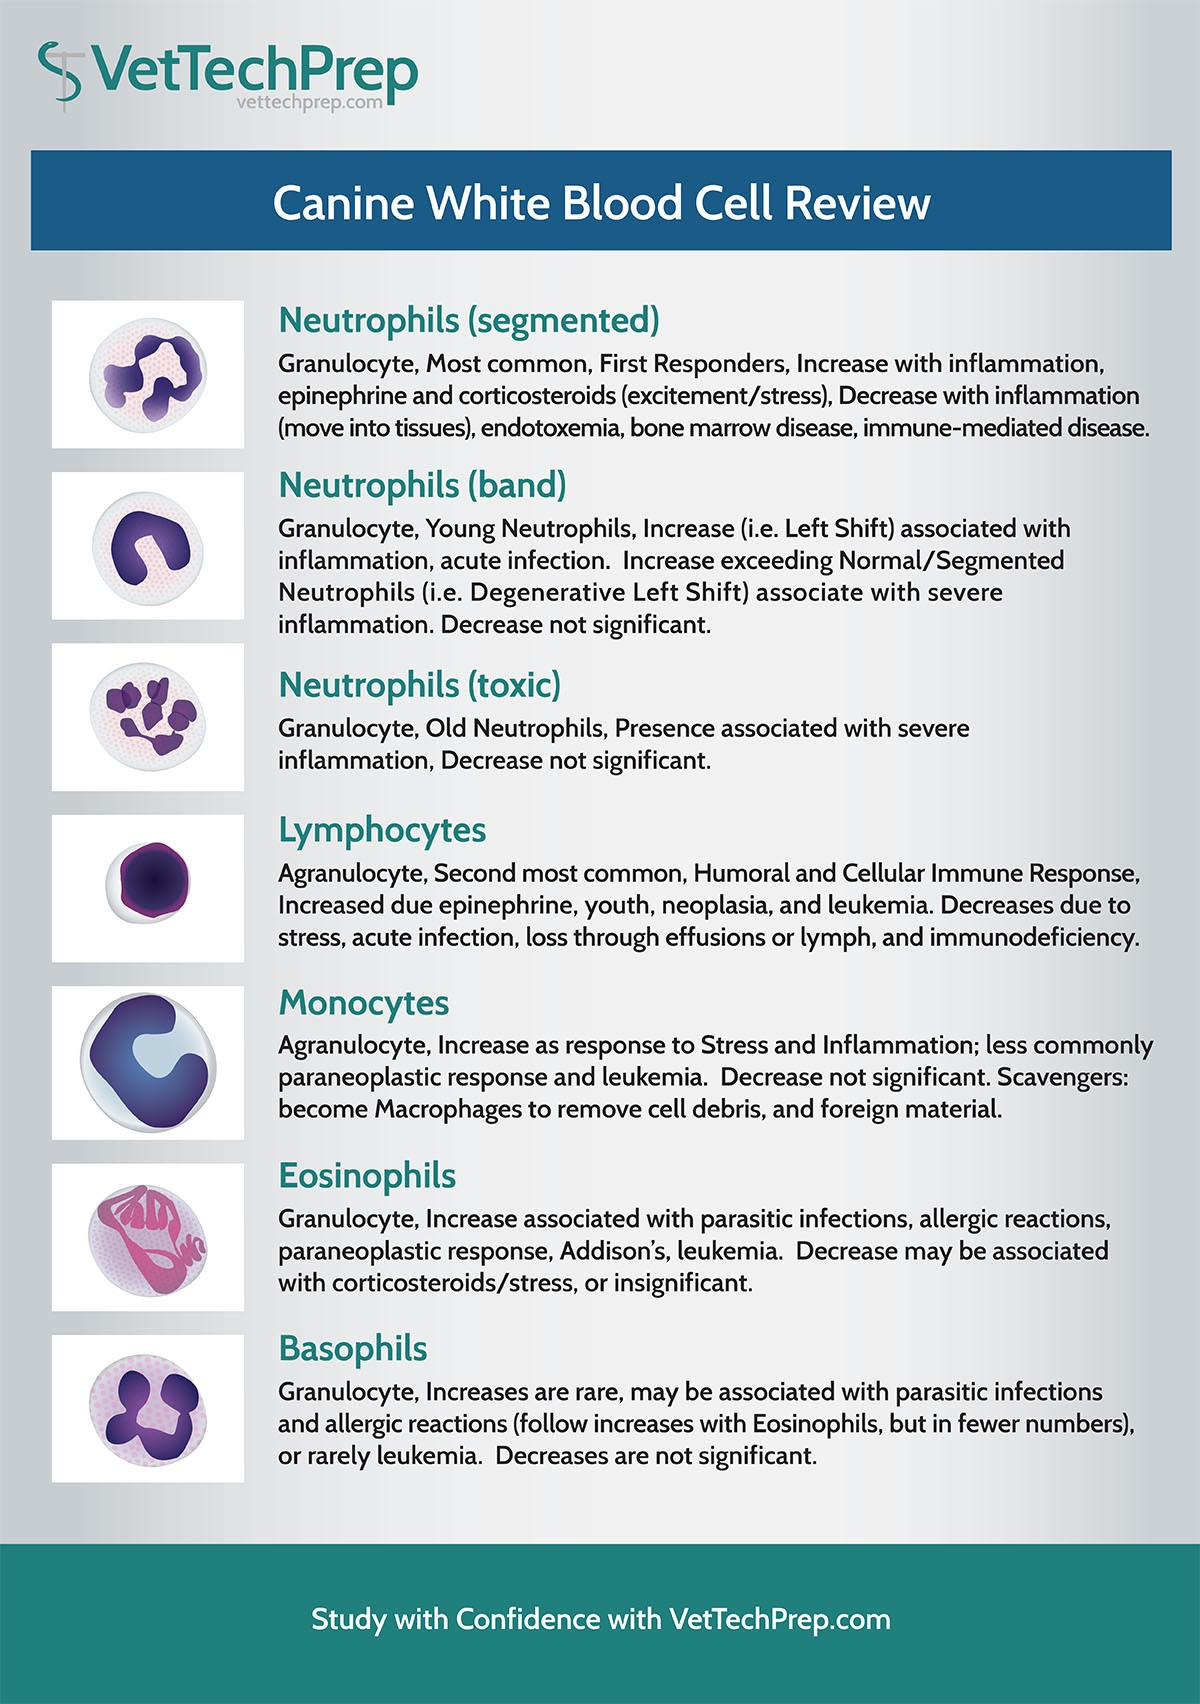 Infographic Canine White Blood Cell Review